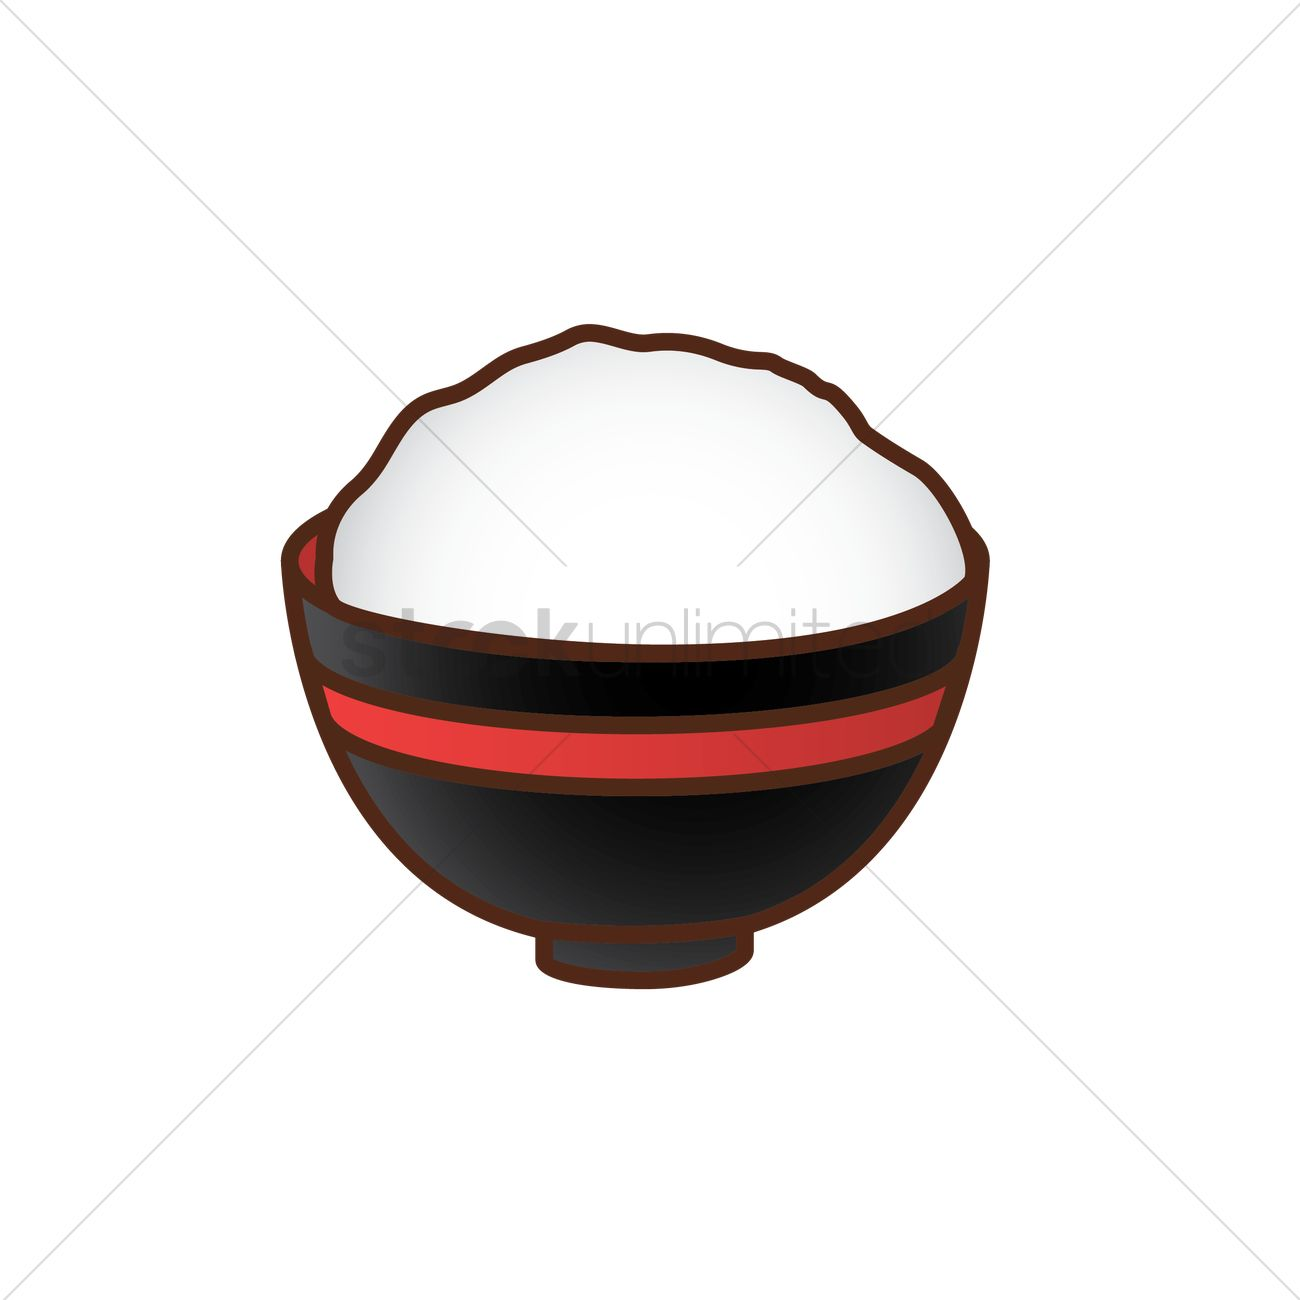 1300x1300 Rice Bowl Vector Image